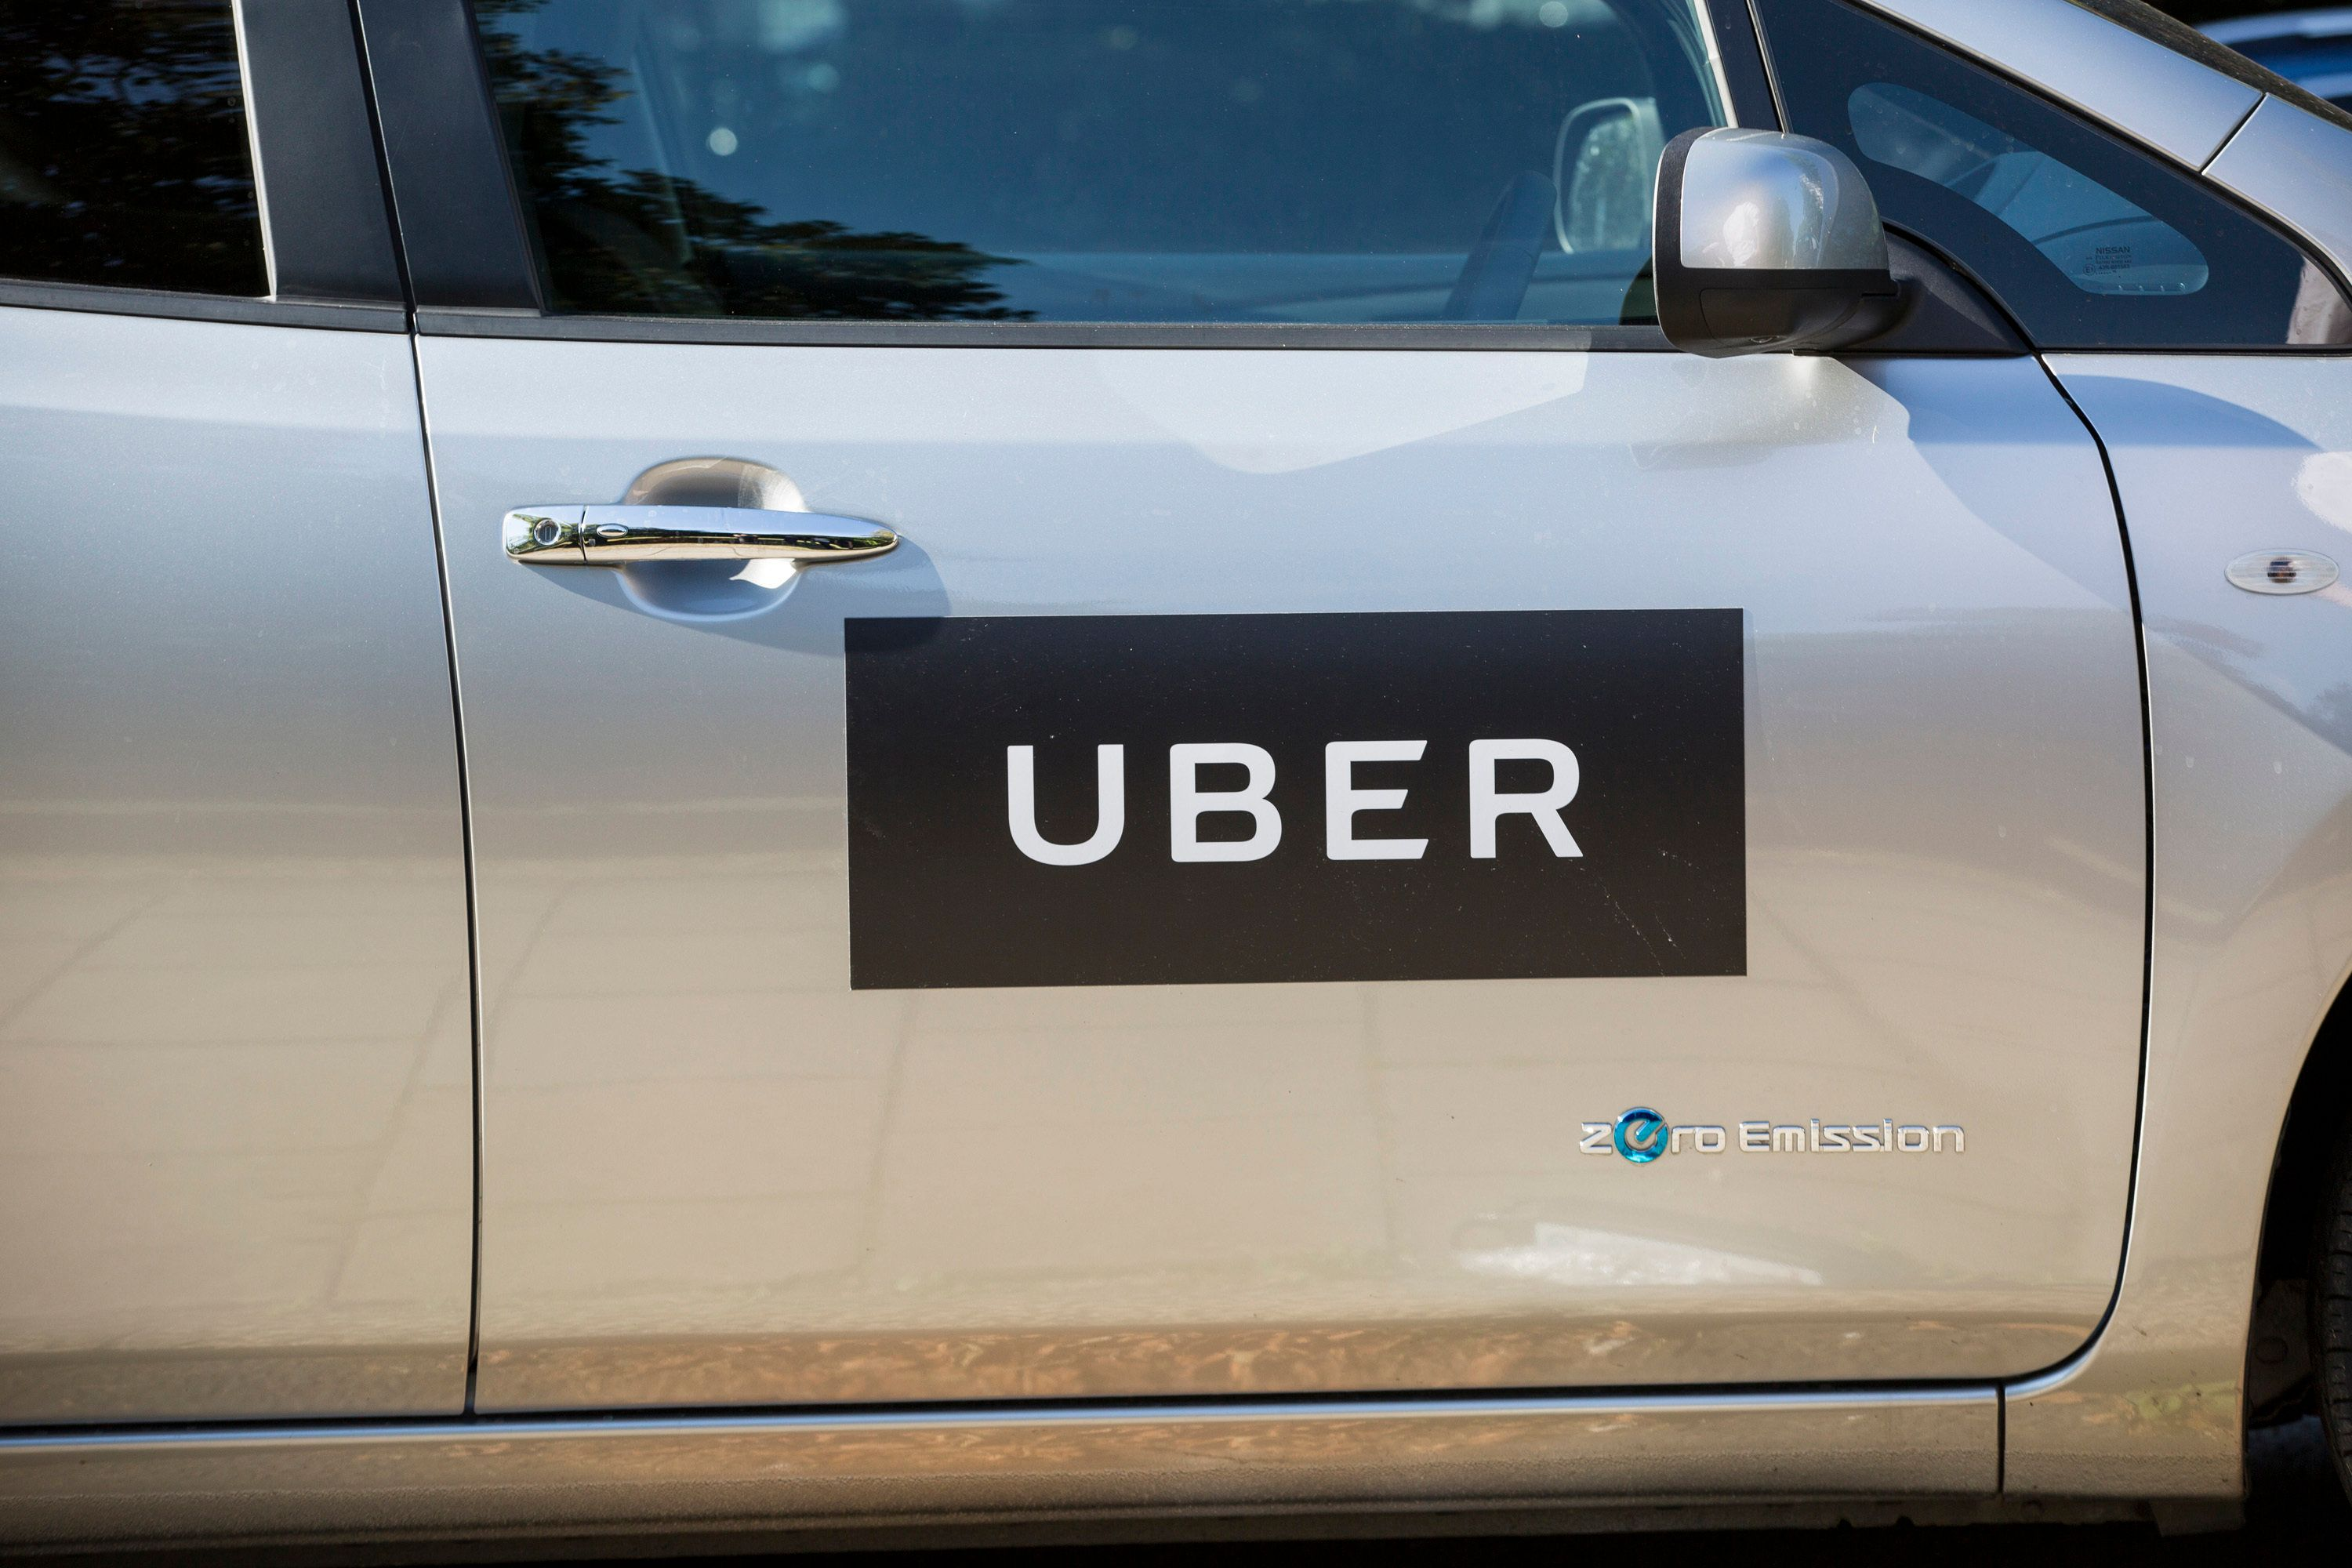 Uber Drivers Forced To Work Exhausting Hours, Are A 'Danger To Public Safety', Claims